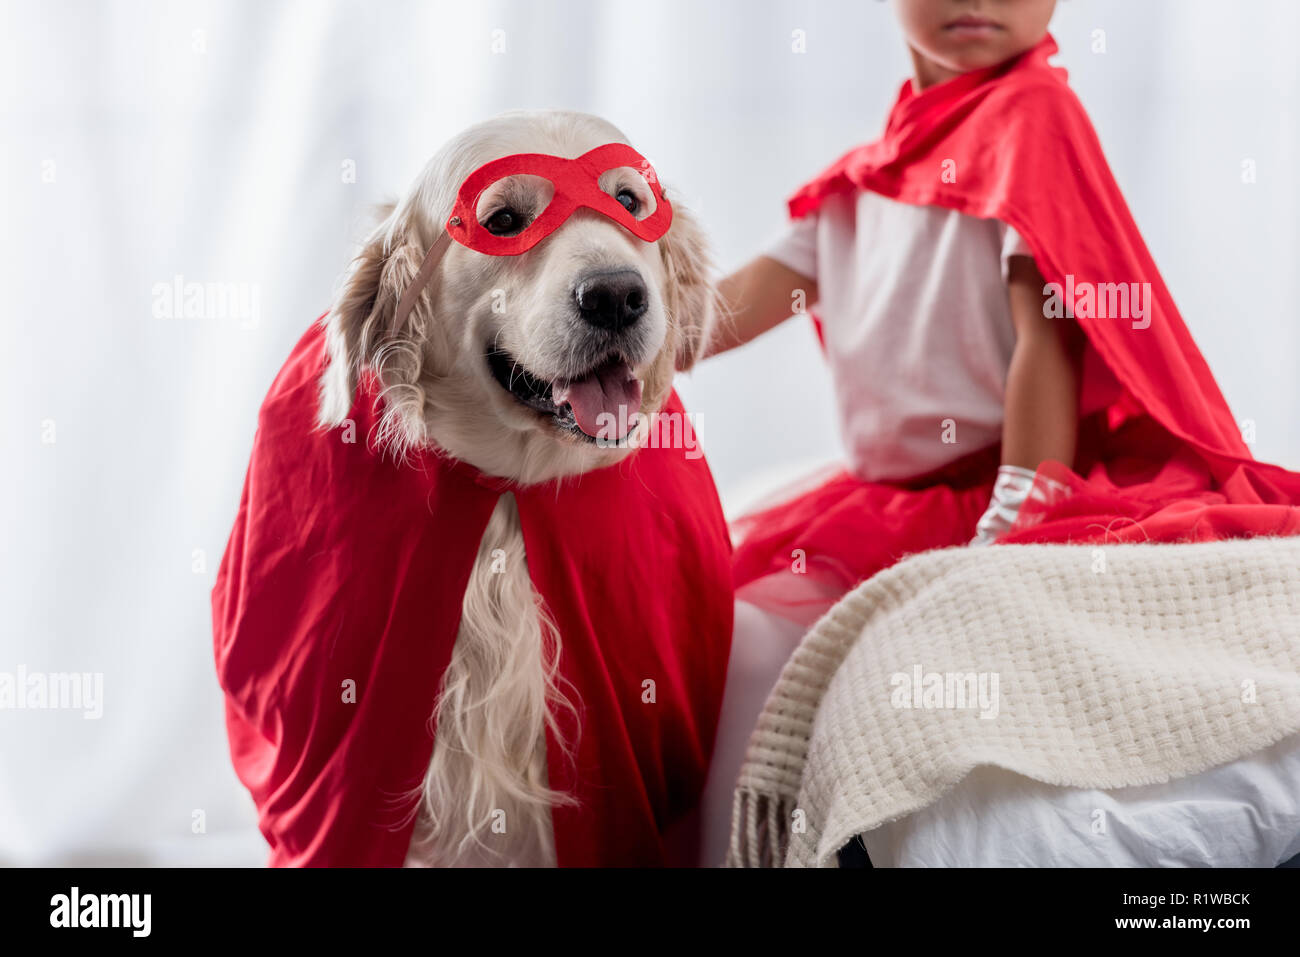 partial view of little kid with golden retriever dog in red superhero costumes - Stock Image